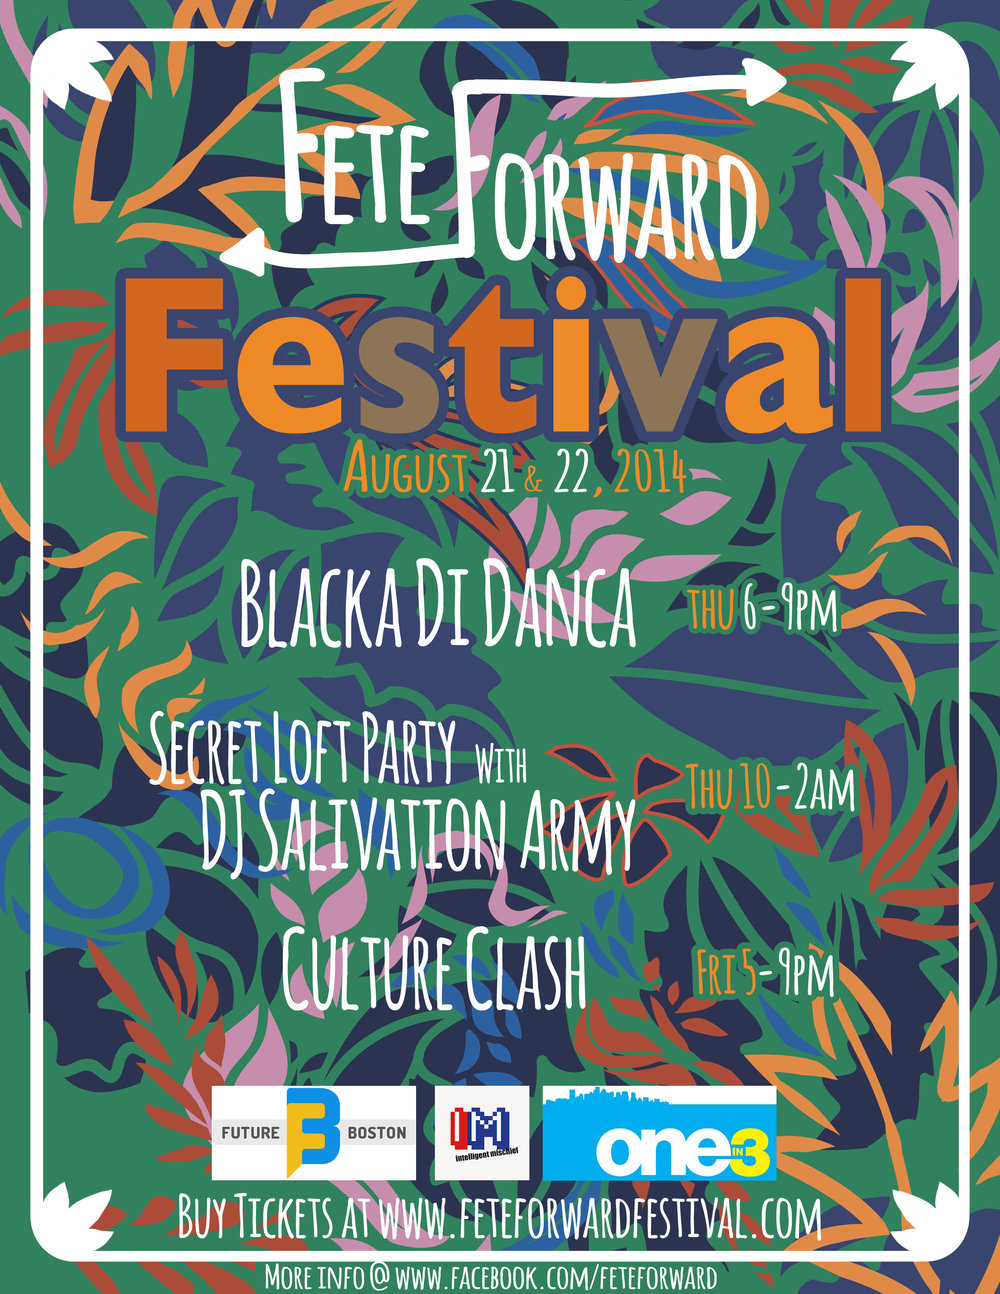 FETE FORWARD 2014